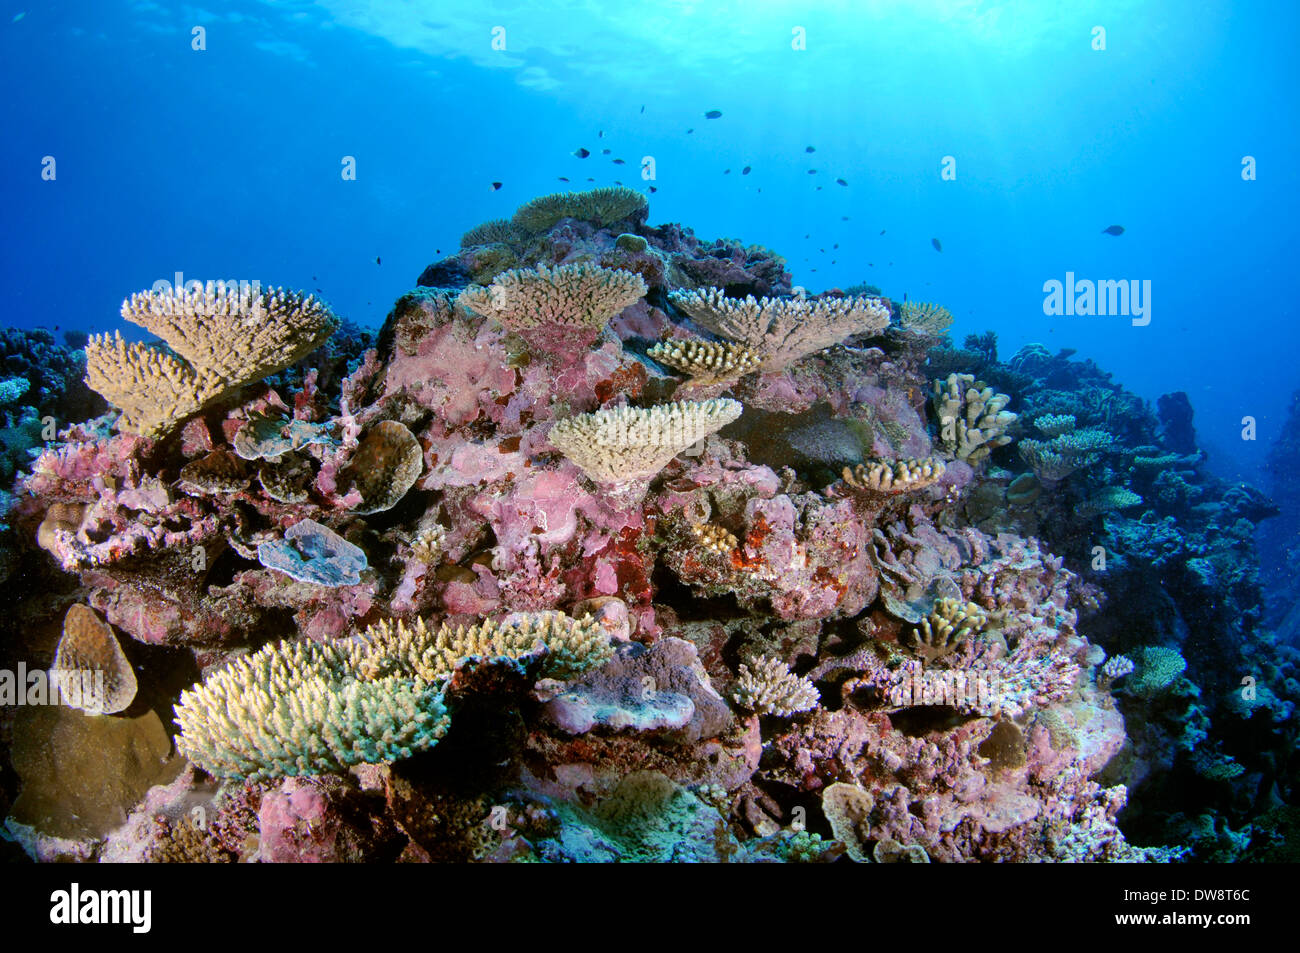 Highly diverse coral reef, Fugavea Pass, Uvea Island, Wallis and Futuna, South Pacific - Stock Image